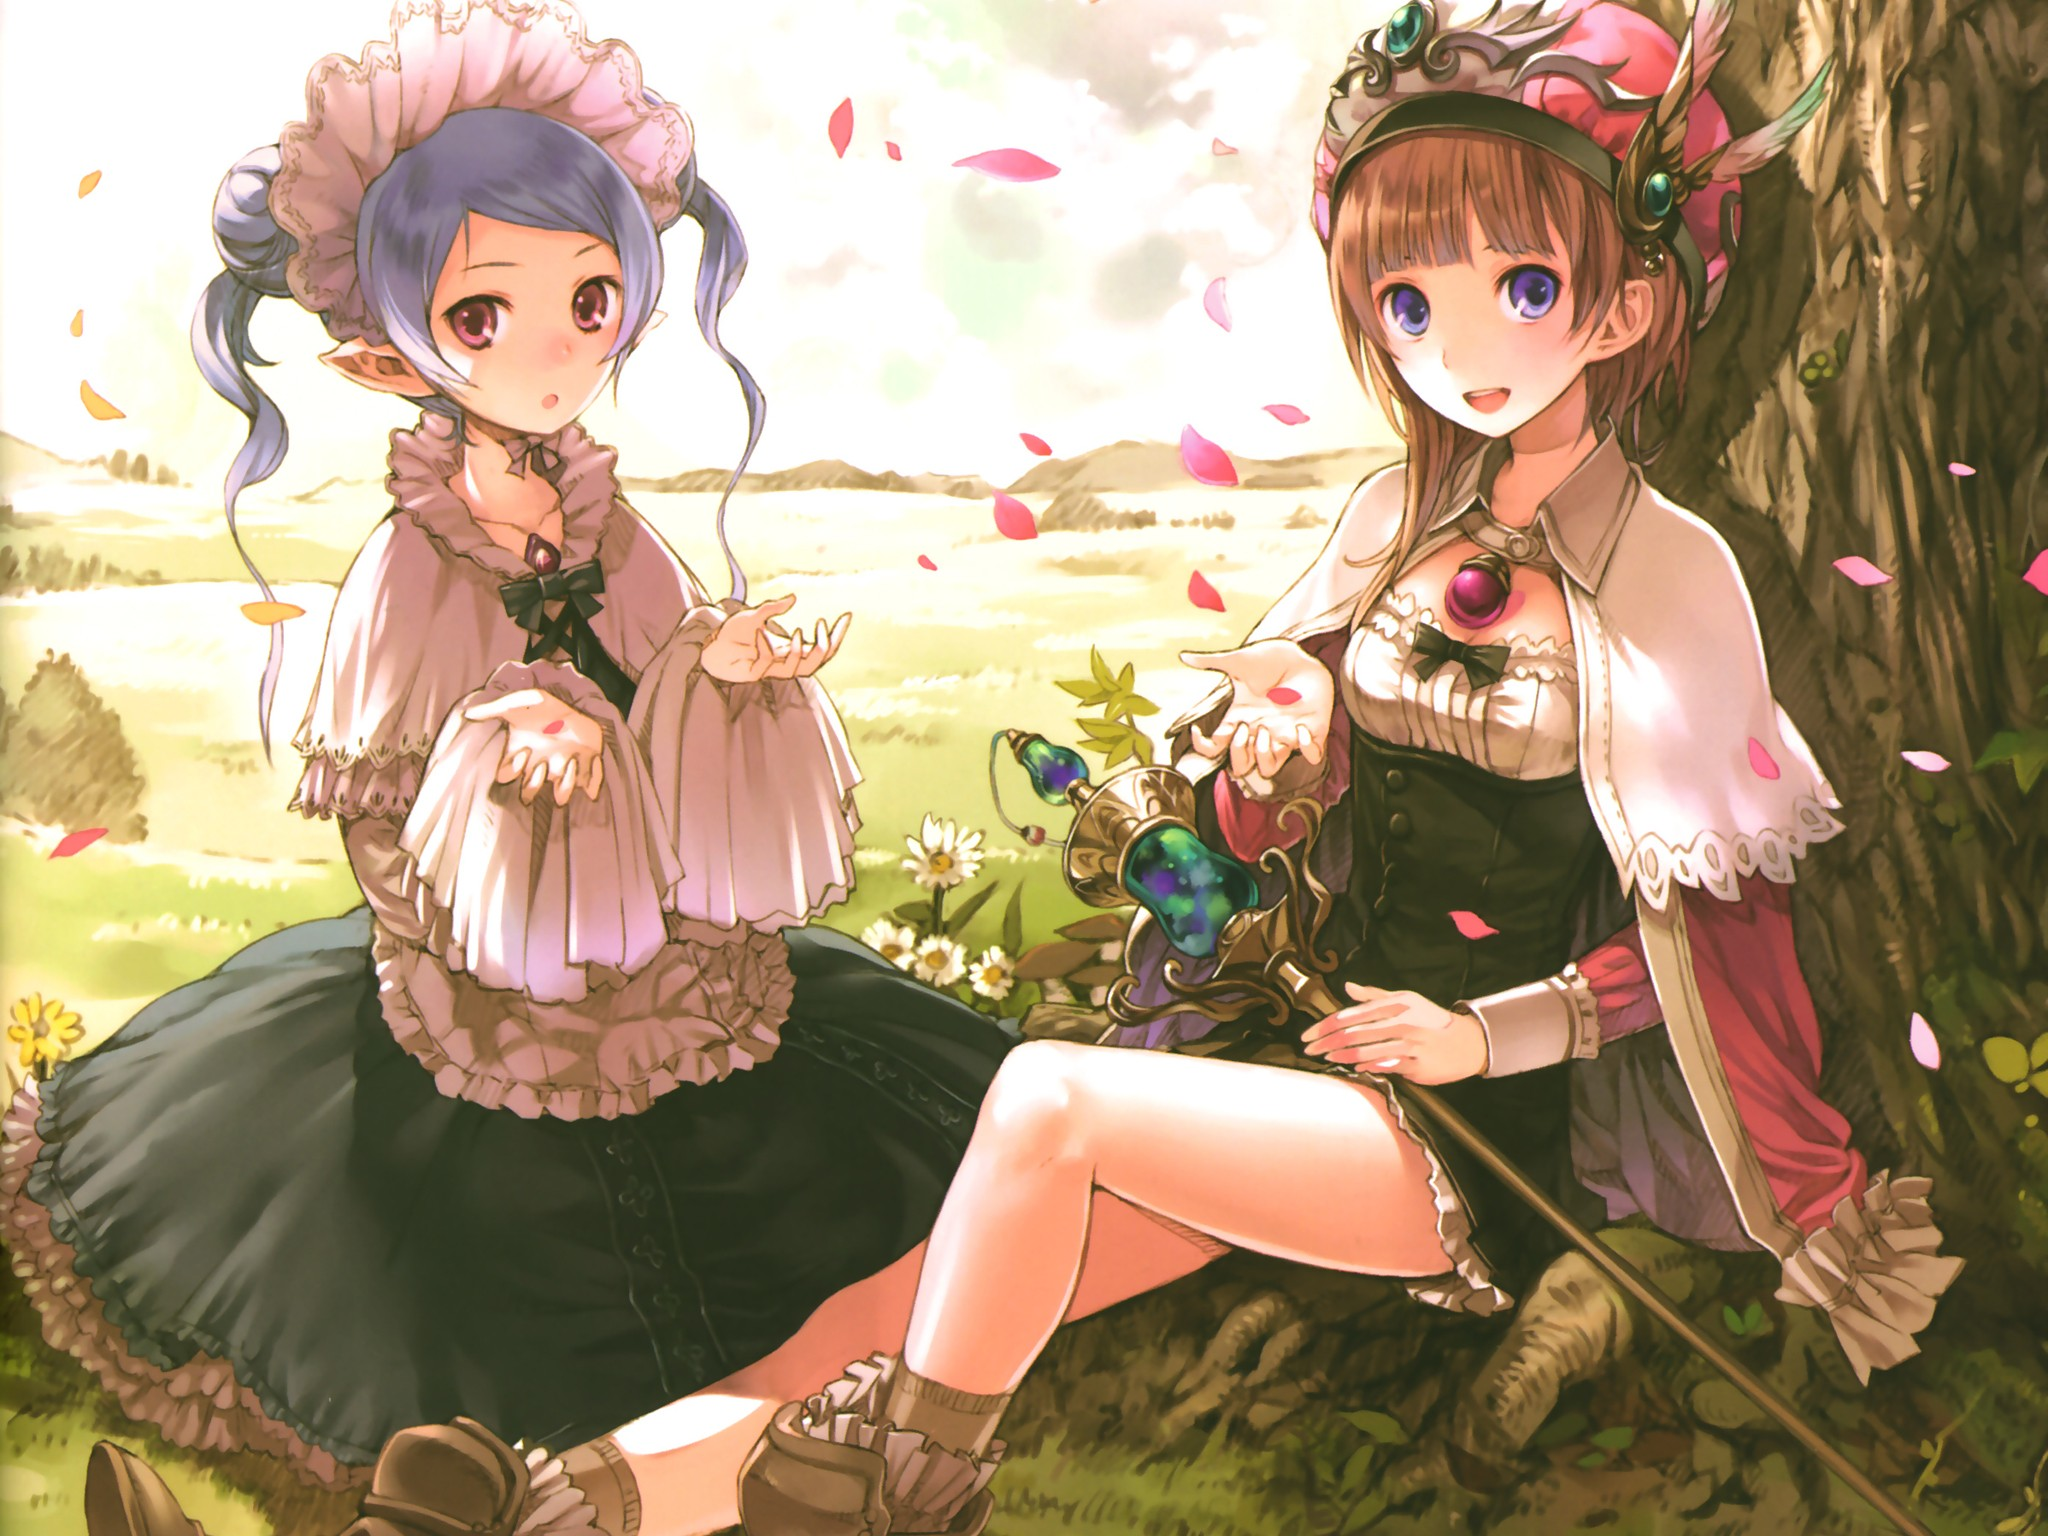 atelier rorona hom kishida mel rororina fryxell g wallpaper background 2048x1536